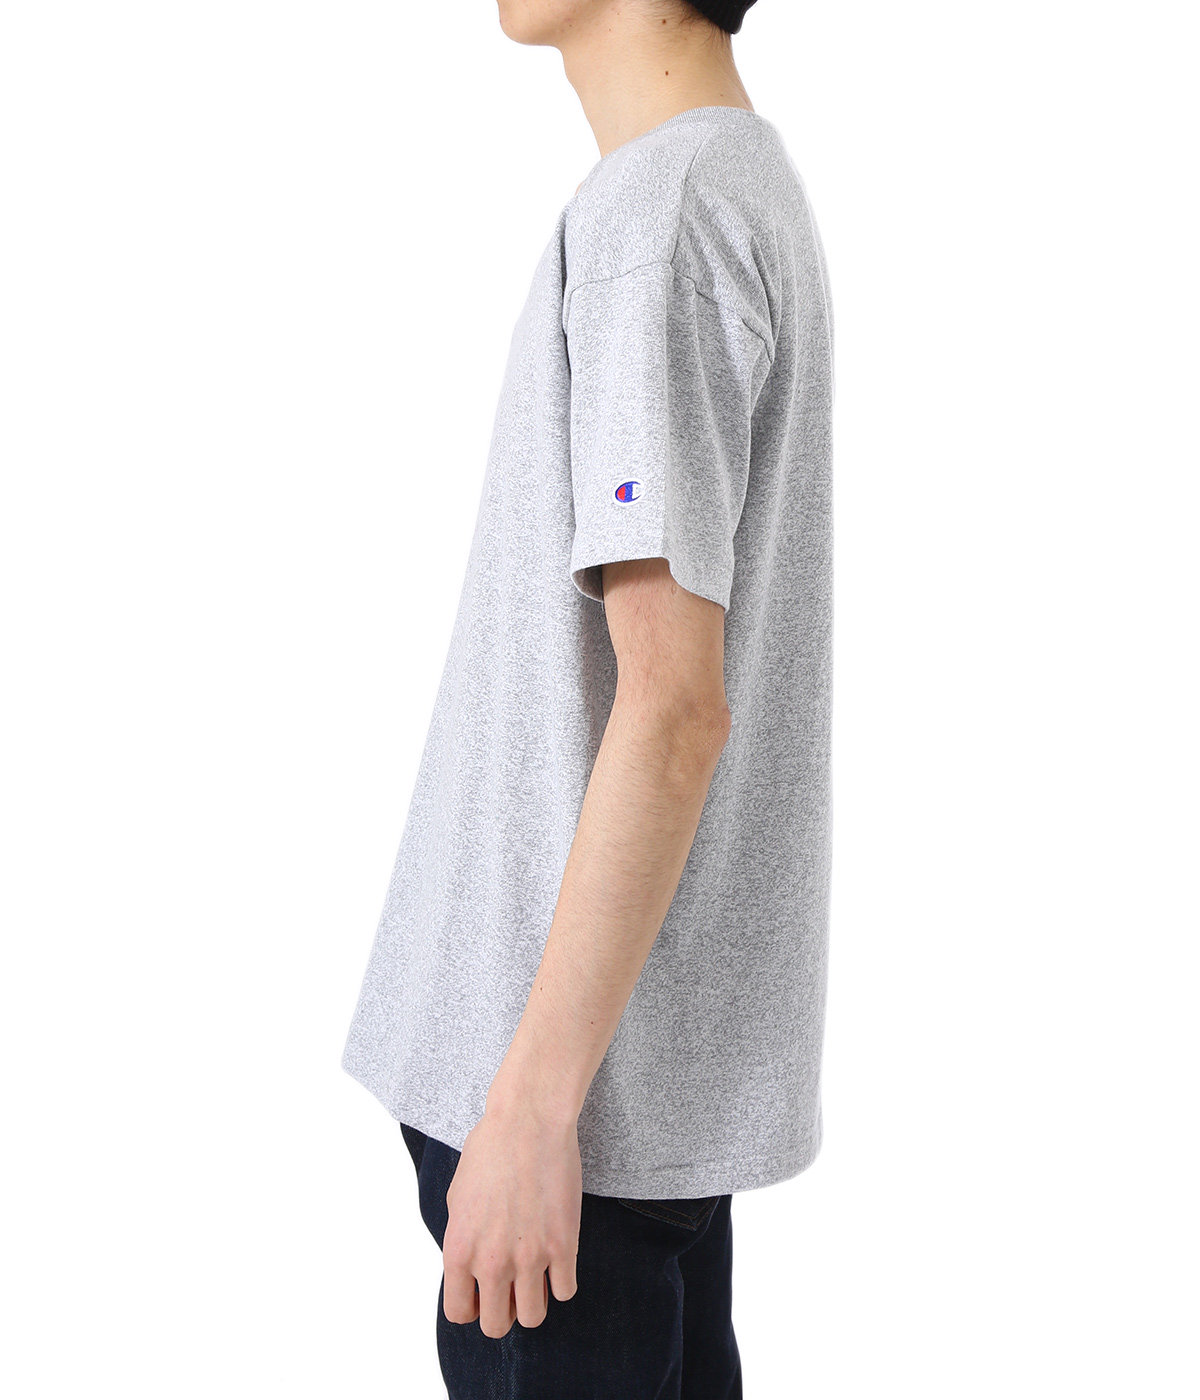 77QS V-NECK T-SHIRT